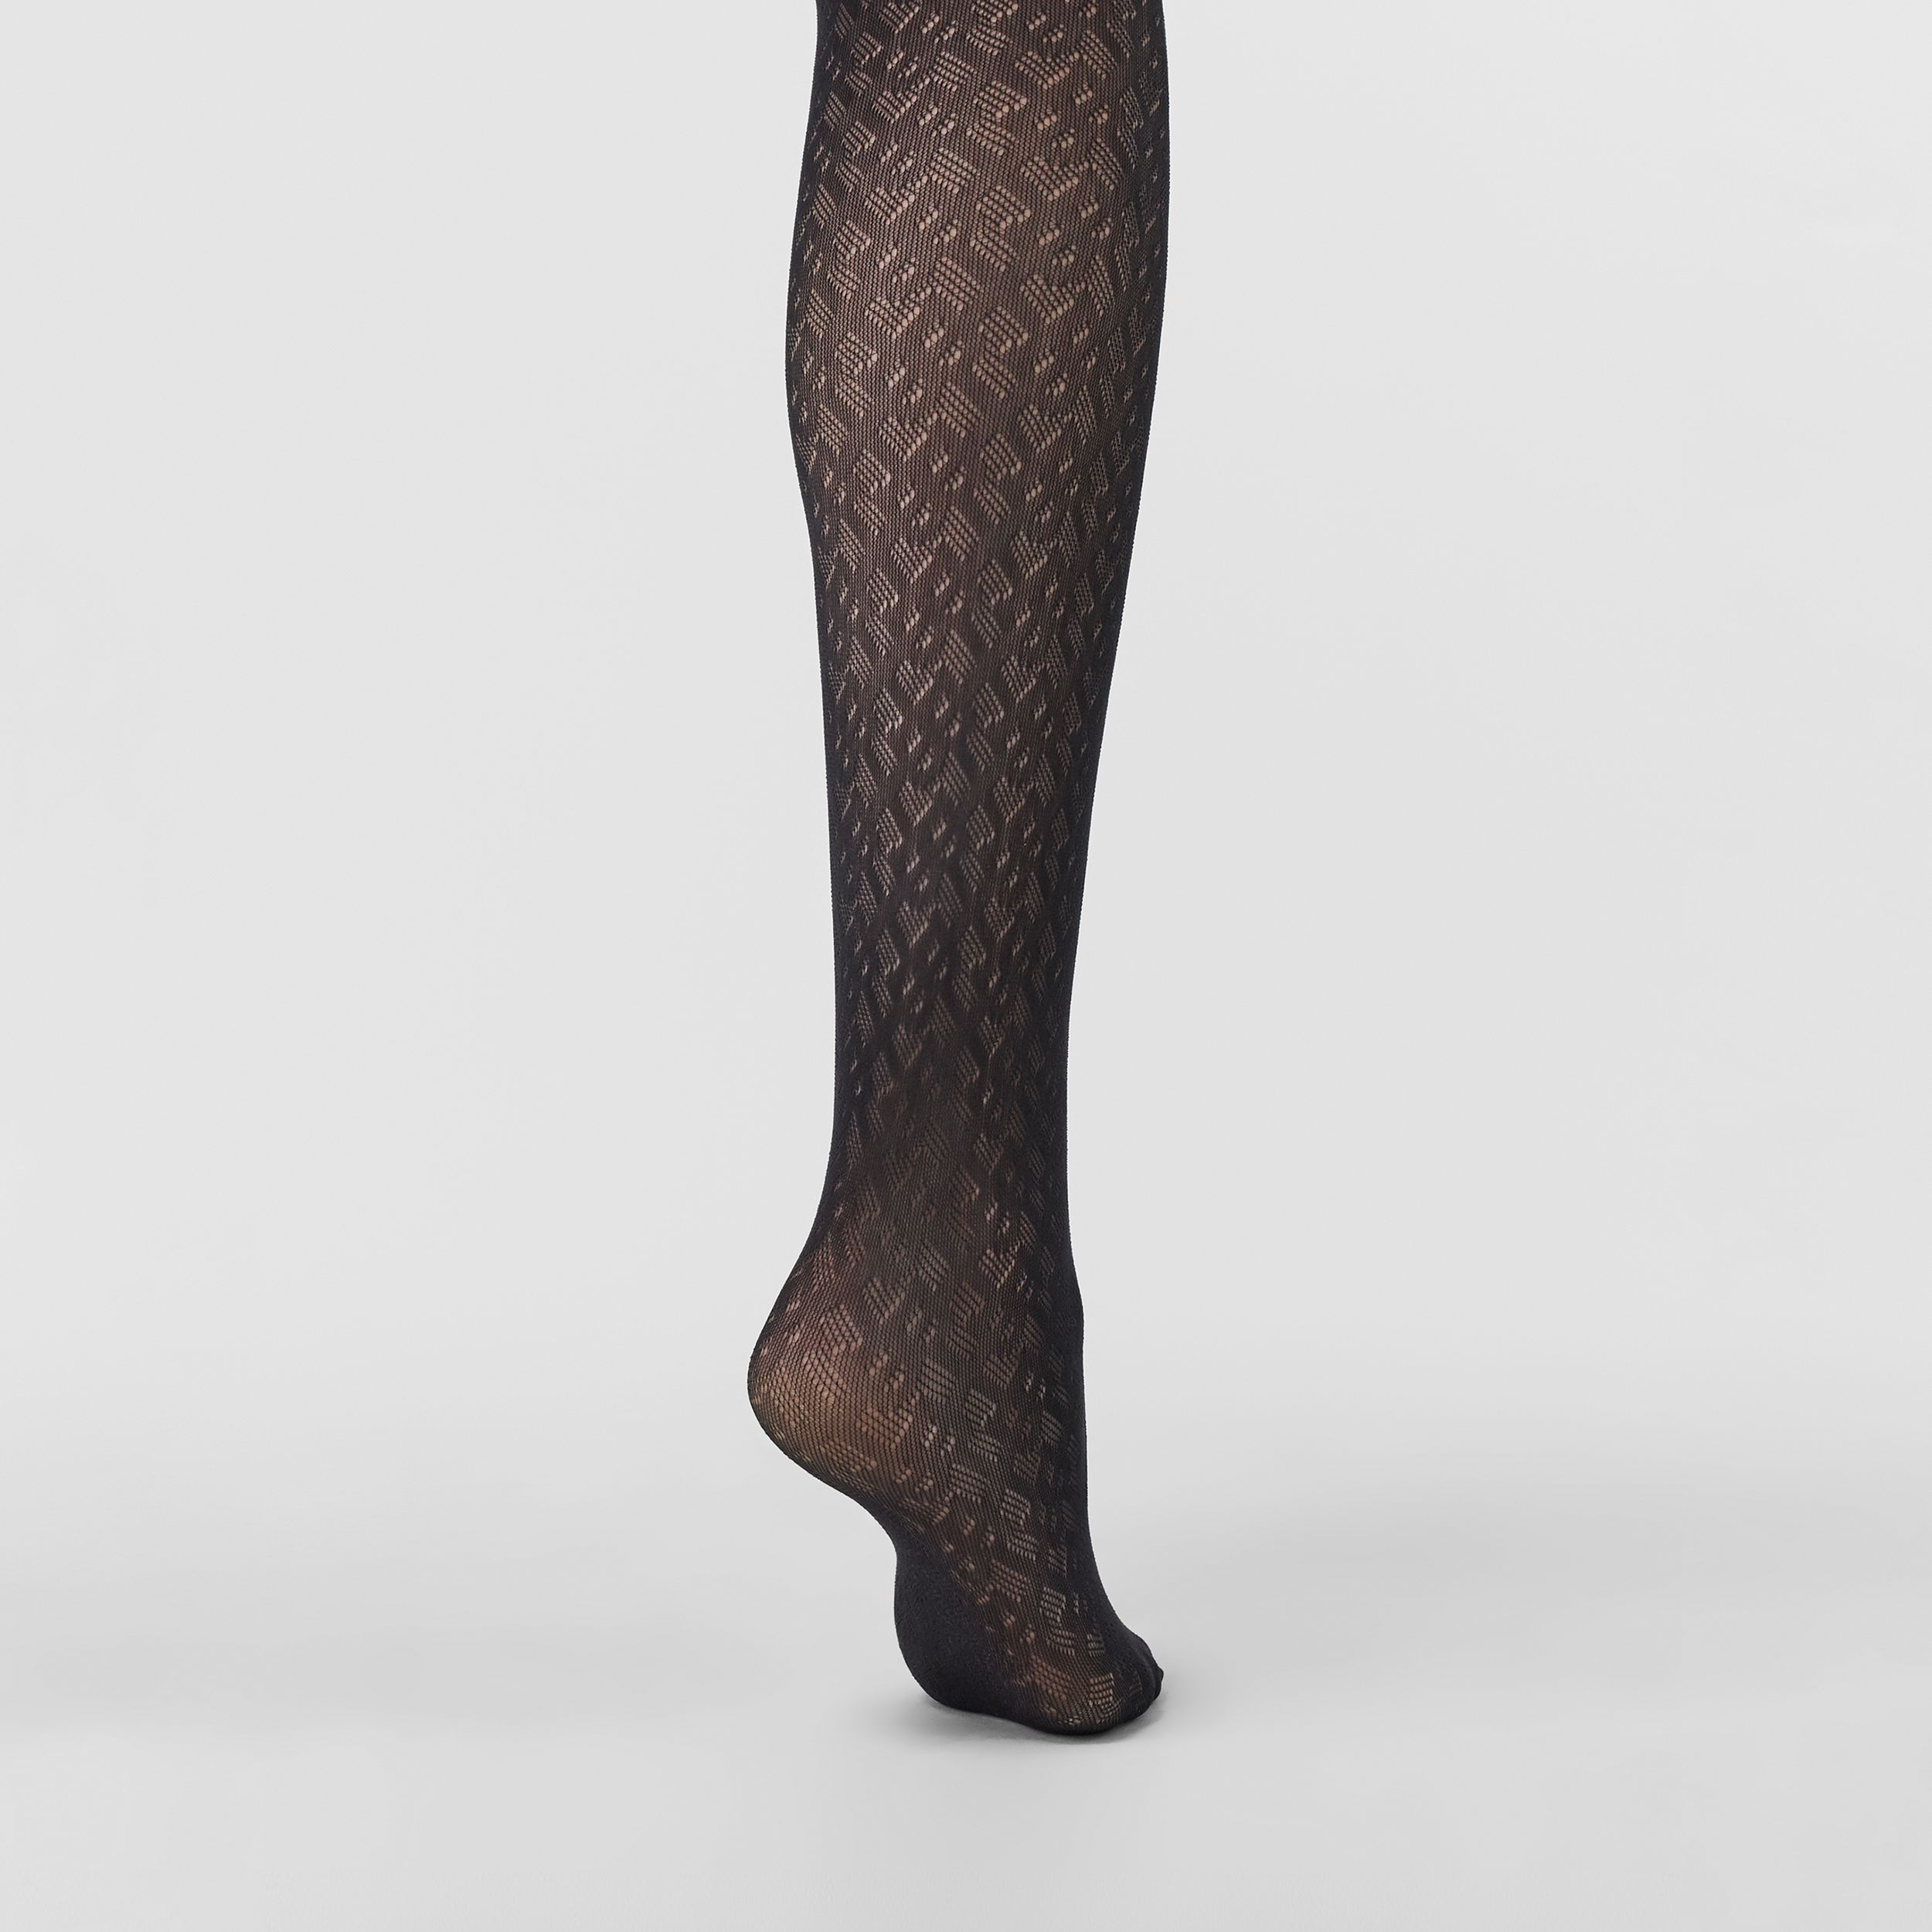 Monogram Motif Tights in Black - Women | Burberry - 3